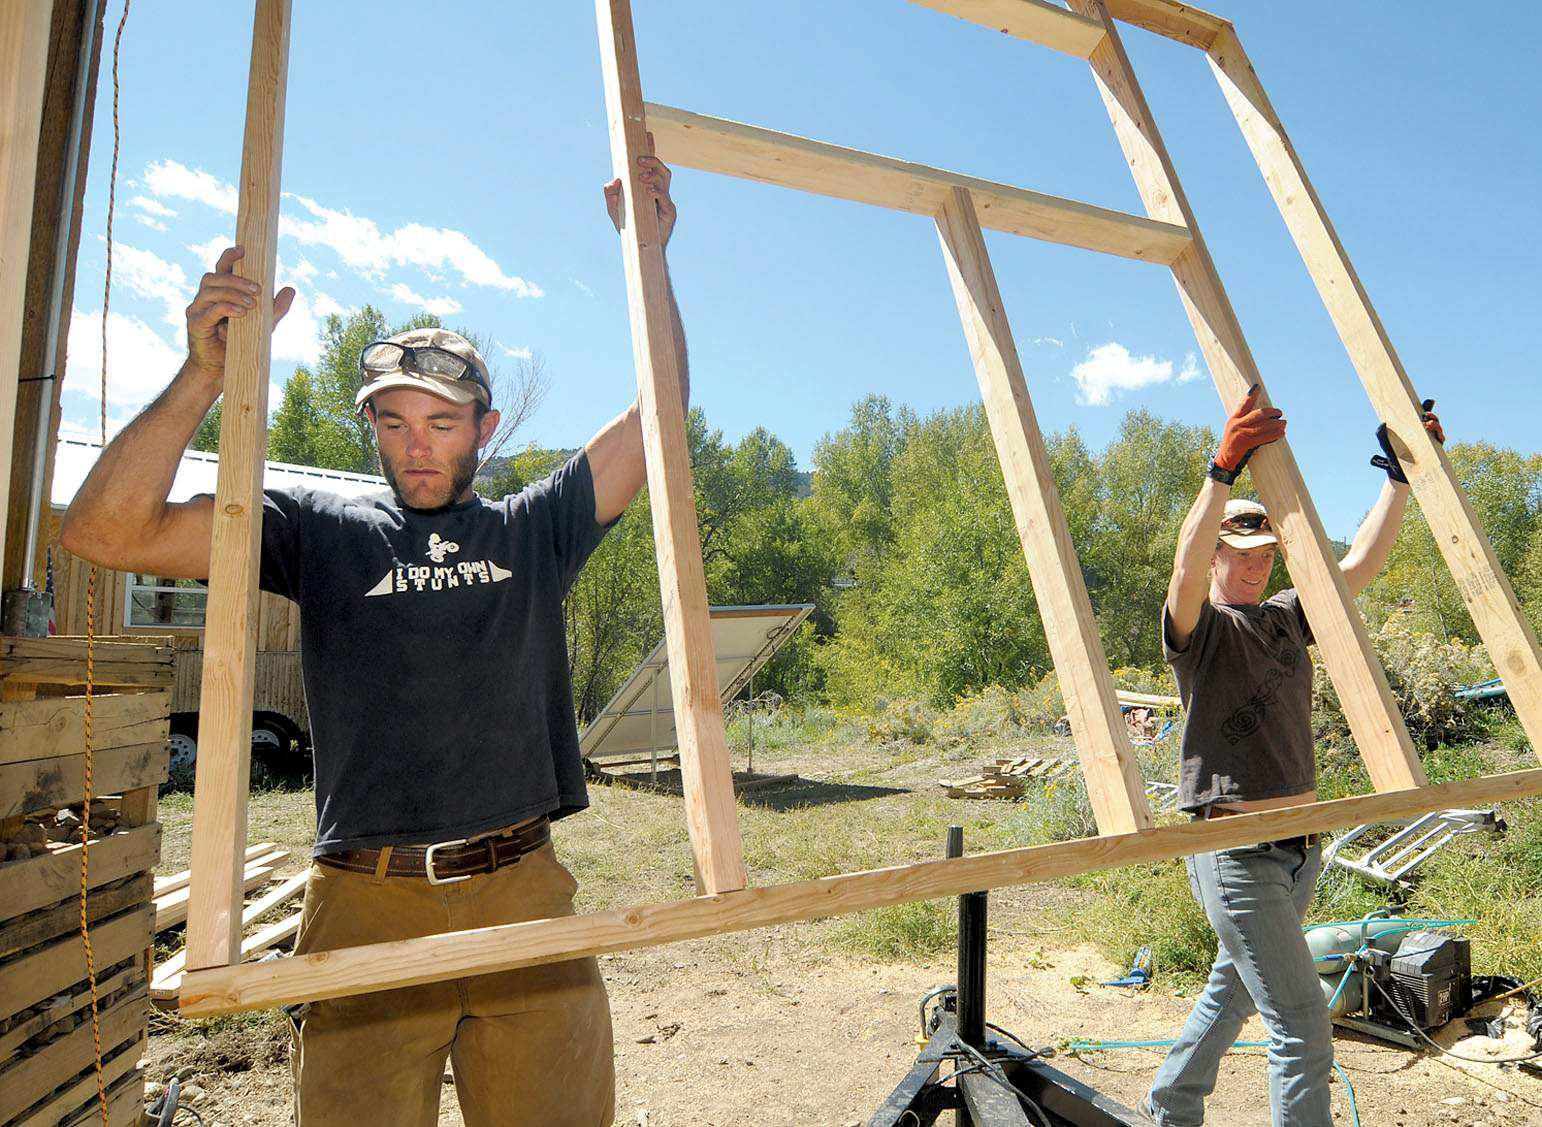 Elegant Rocky Mountain Tiny Houses Gets A Hand From Laura Faubion Inbuilding A Home At His Durango Big Rocky Mountain Mansion Tiny House Nation Rocky Mountain Tiny House Cost Greg Parham curbed Rocky Mountain Tiny Houses